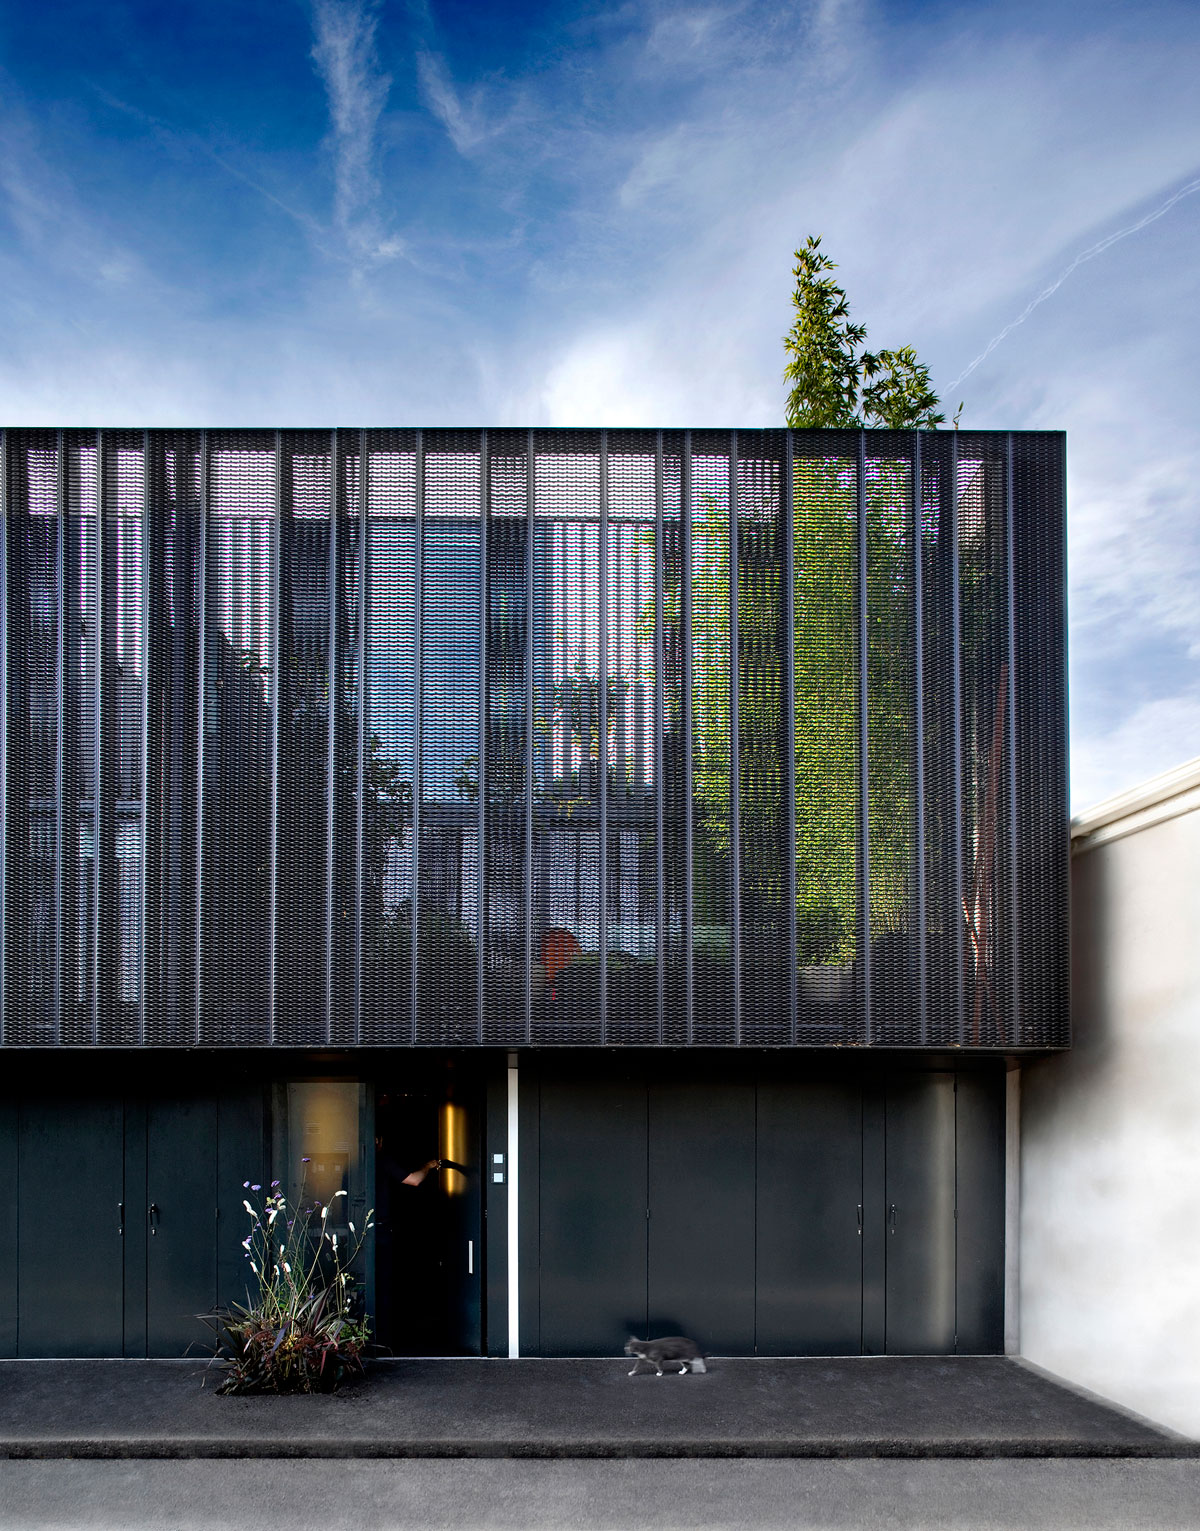 Moire Moire Moire (3 Mews Houses) by ODOS architects